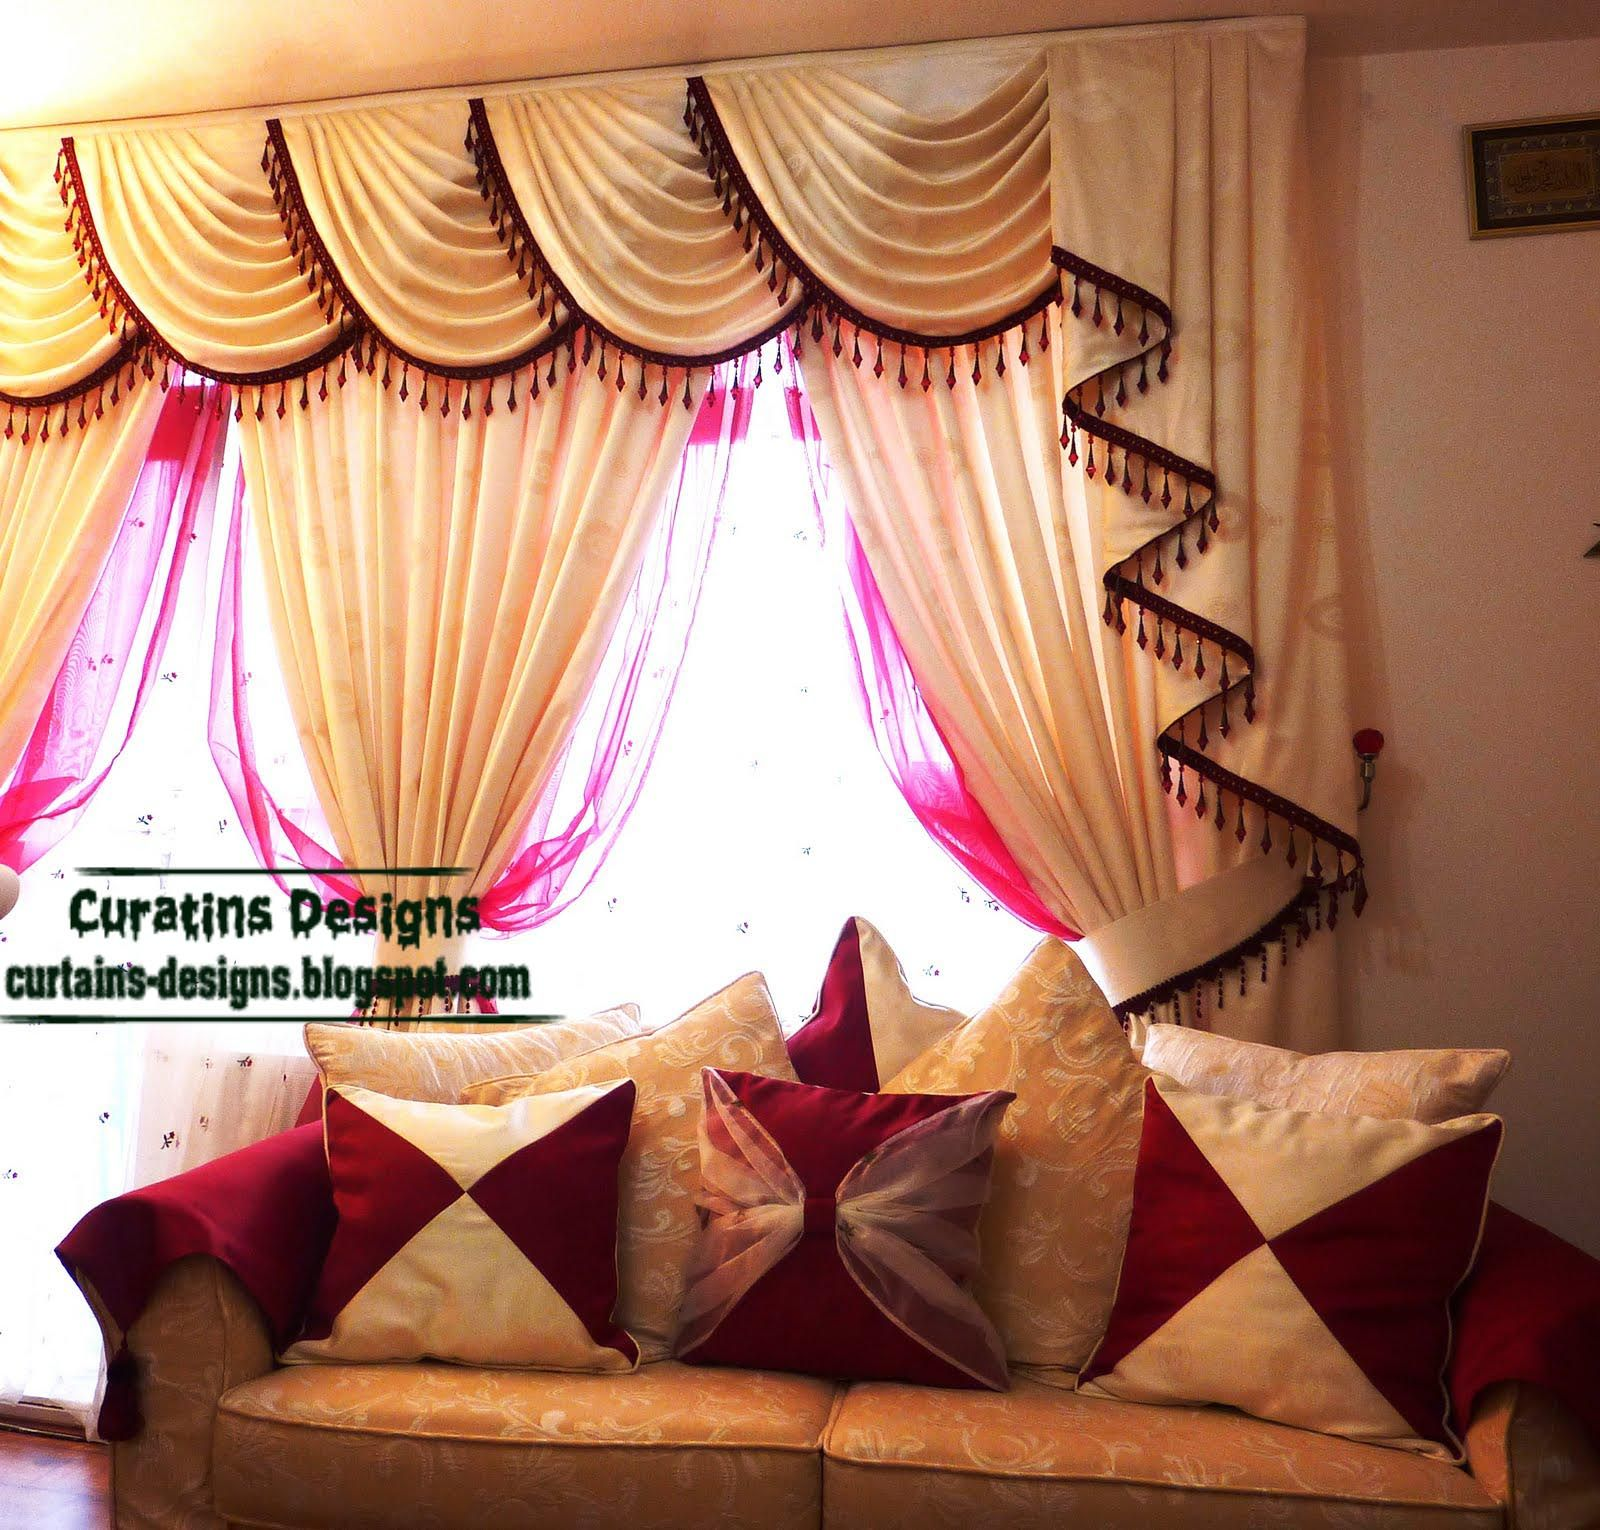 Living+Room+Curtains | Indian Drapes Curtain Design For Living Room Beige